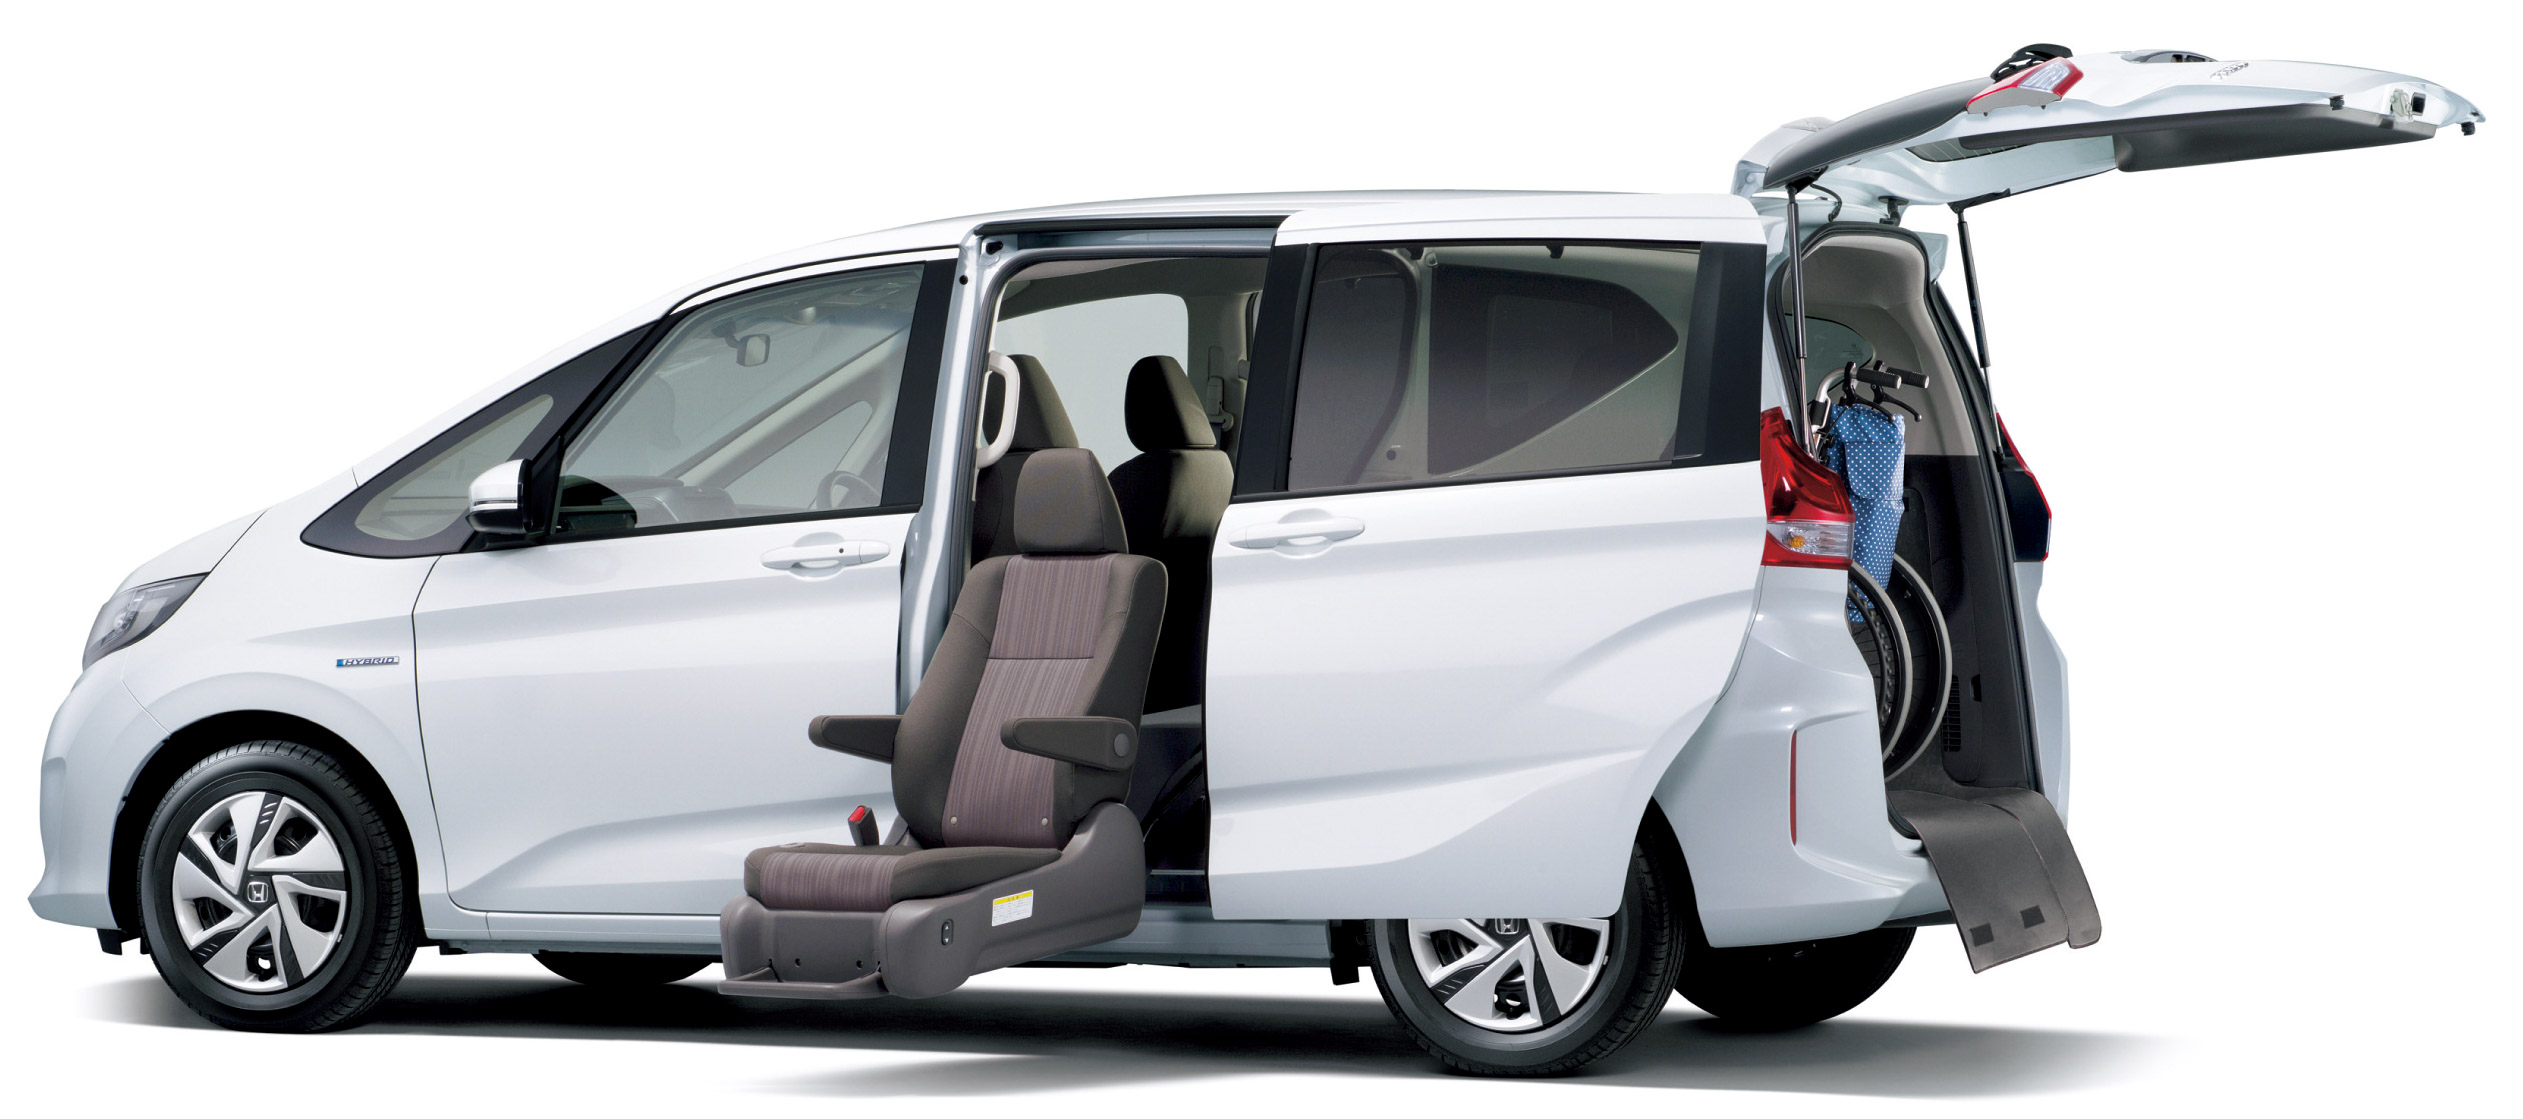 Honda For Sale >> All-new 2016 Honda Freed goes on sale in Japan Paul Tan - Image 549908